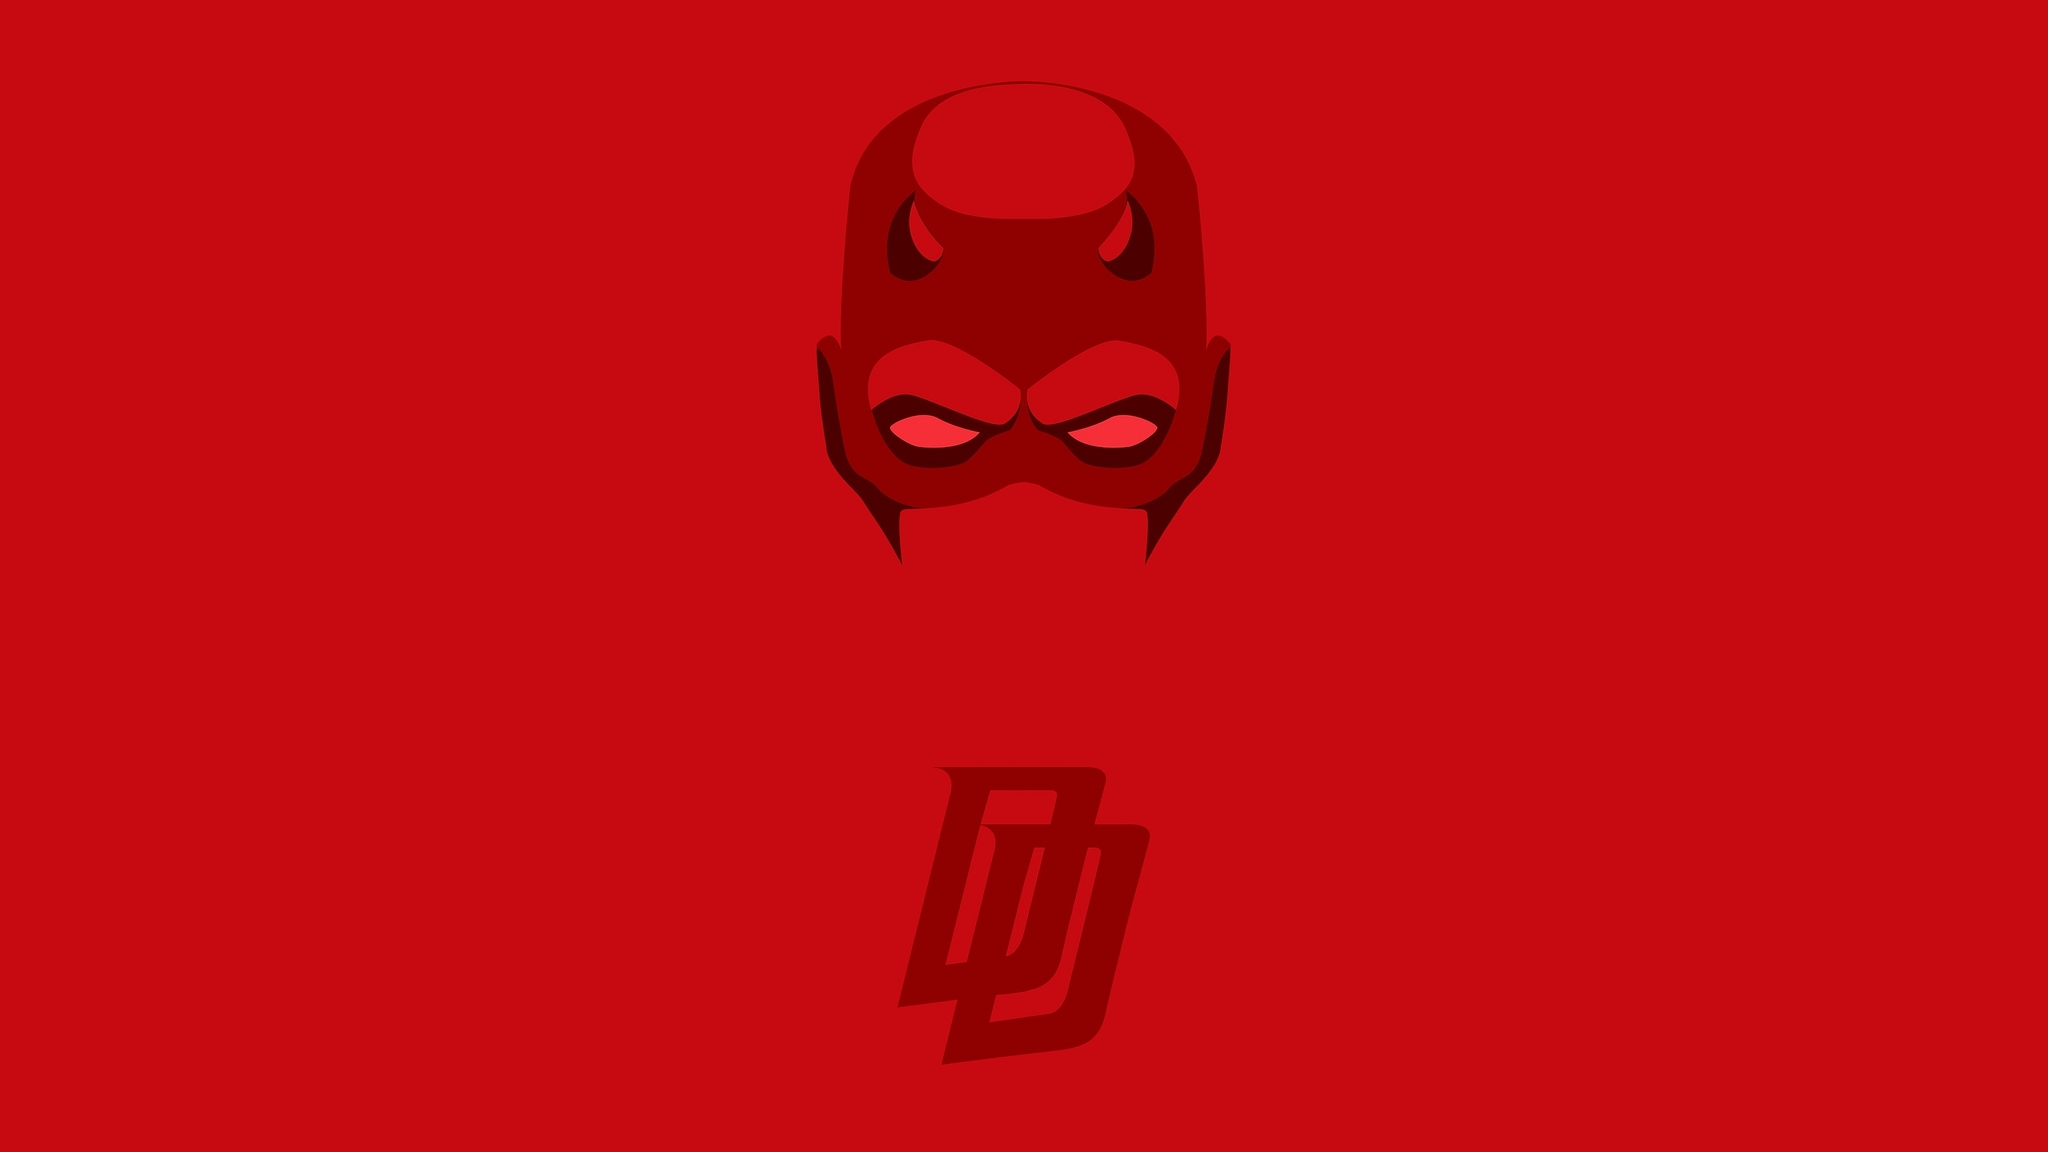 2048x1152 Daredevil Minimalism Resolution HD 4k Wallpapers